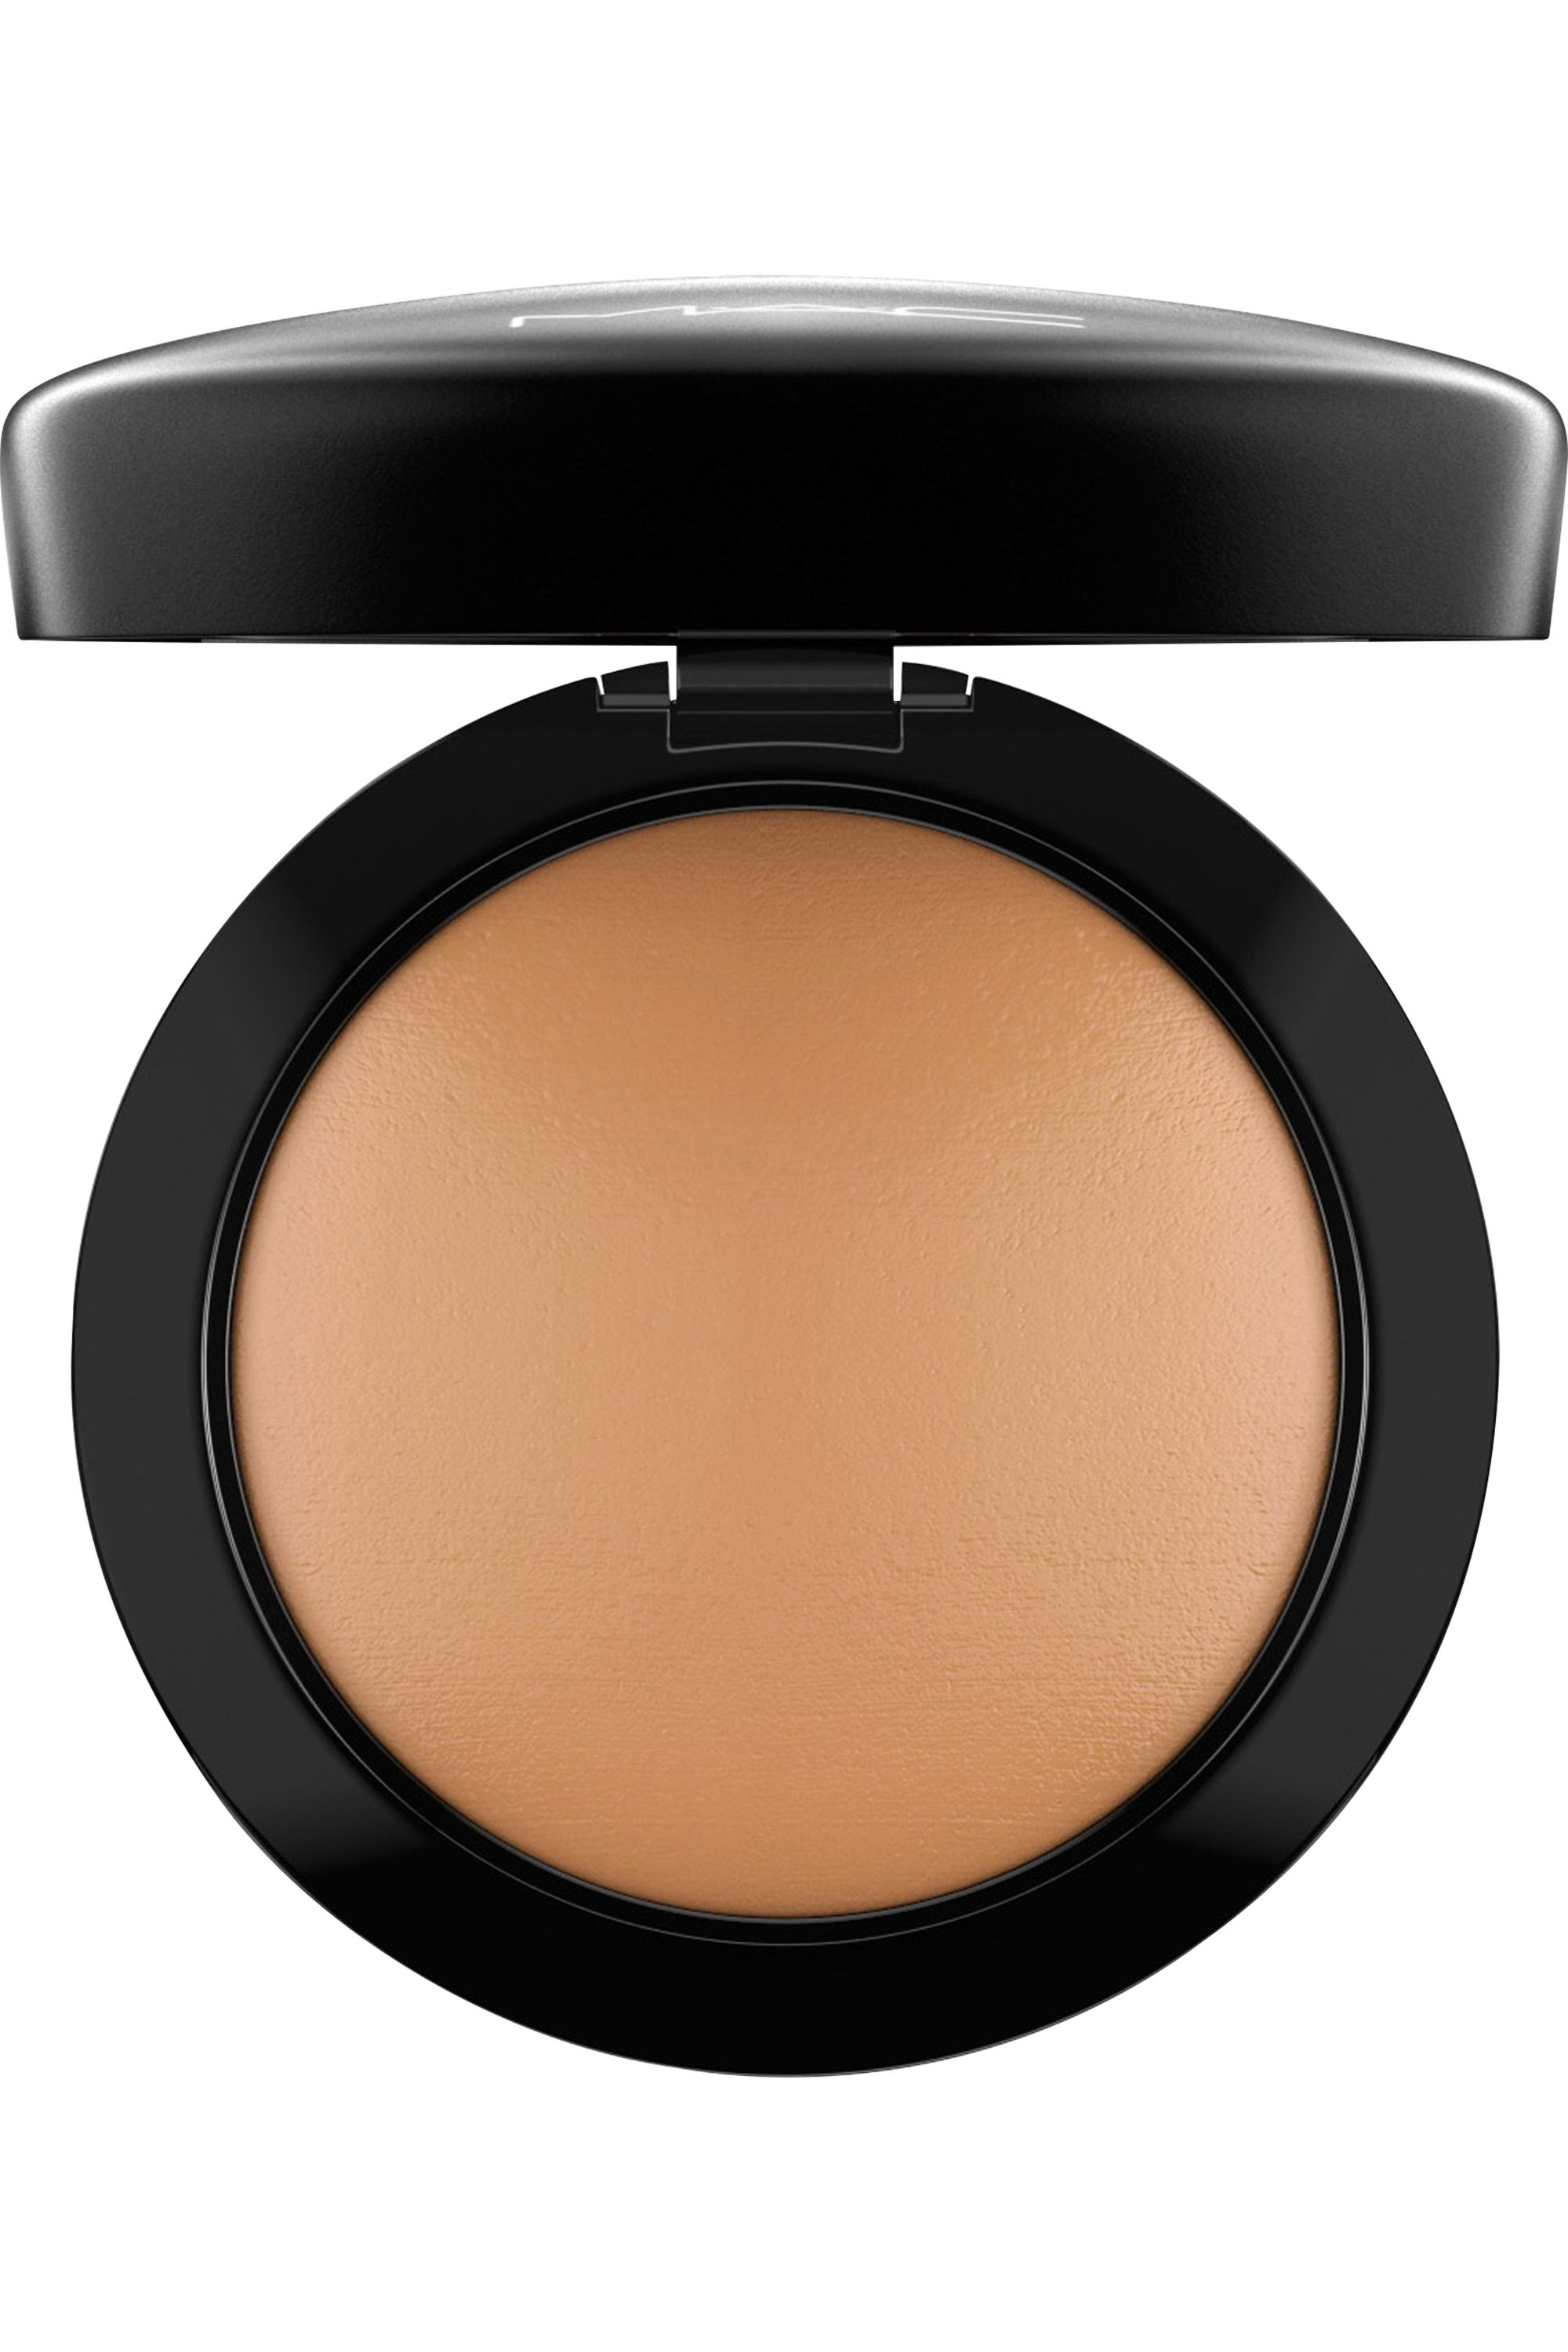 Blissim : M.A.C - Poudre Compacte Mineralize Skinfinish Natural - Natural Dark